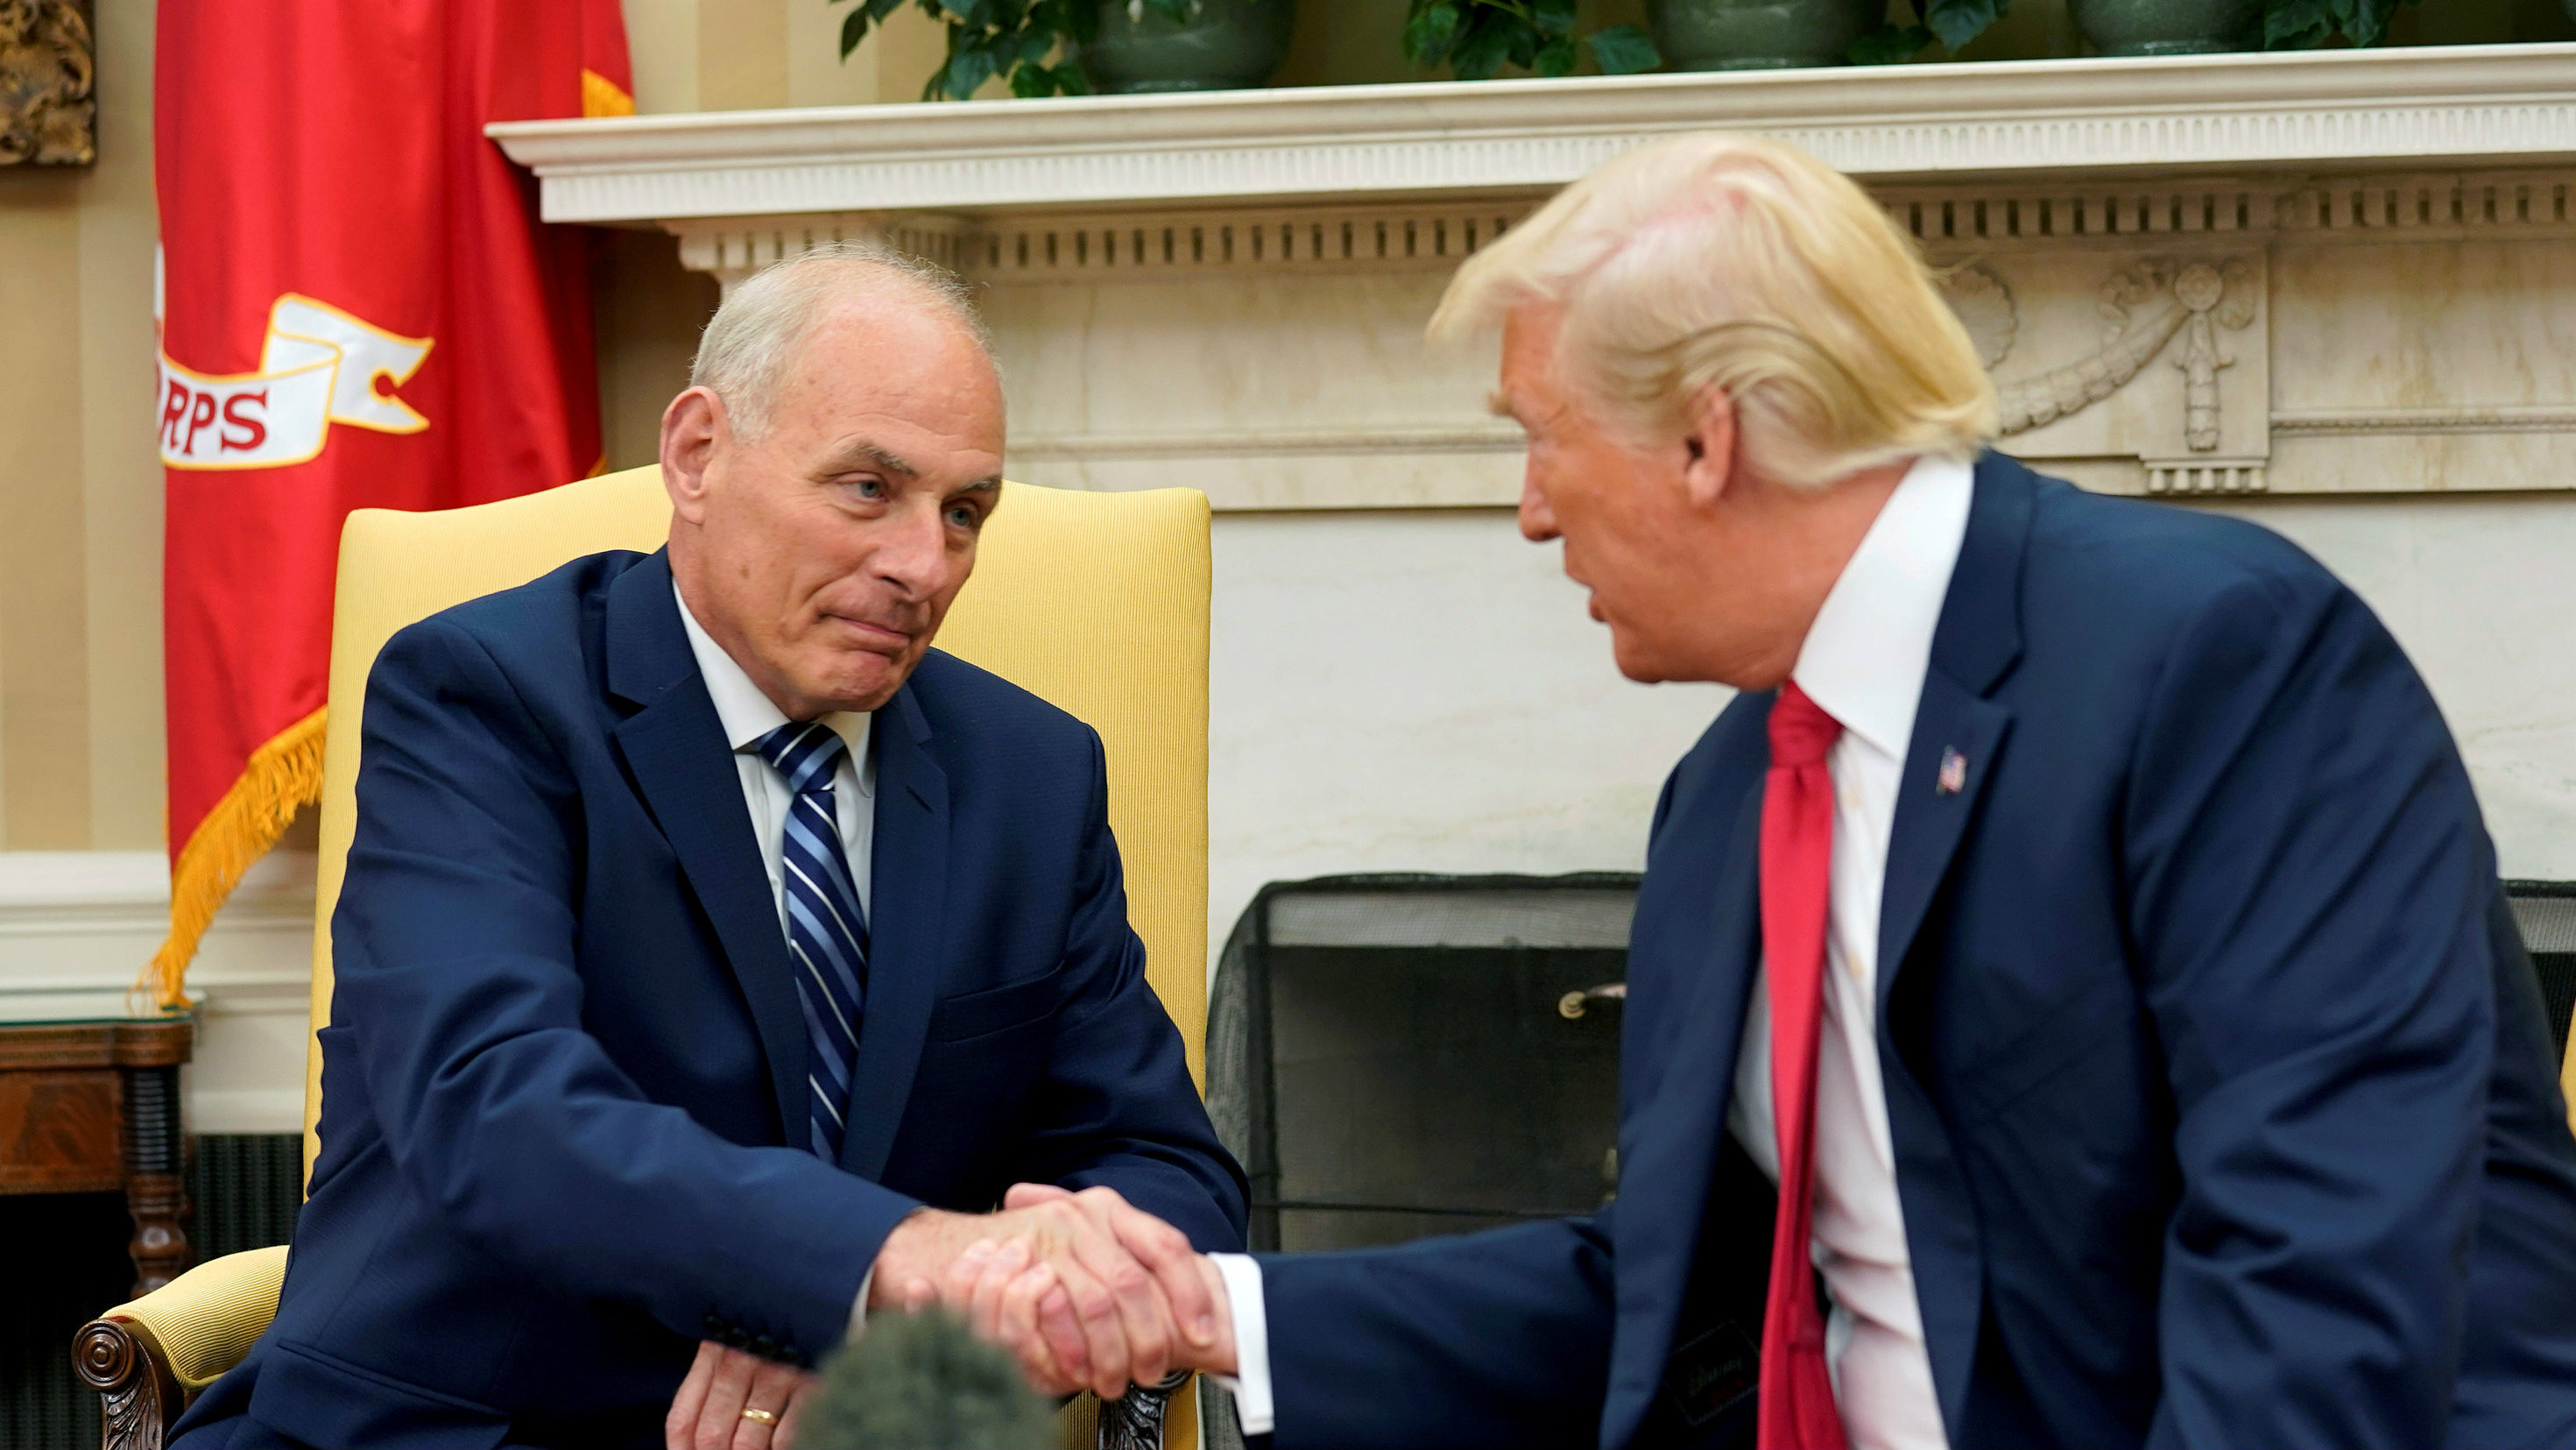 U.S. President Donald Trump shakes hands with John Kelly after he was sworn in as White House Chief of Staff in the Oval Office of the White House in Washington, U.S., July 31, 2017. REUTERS/Joshua Roberts TPX IMAGES OF THE DAY